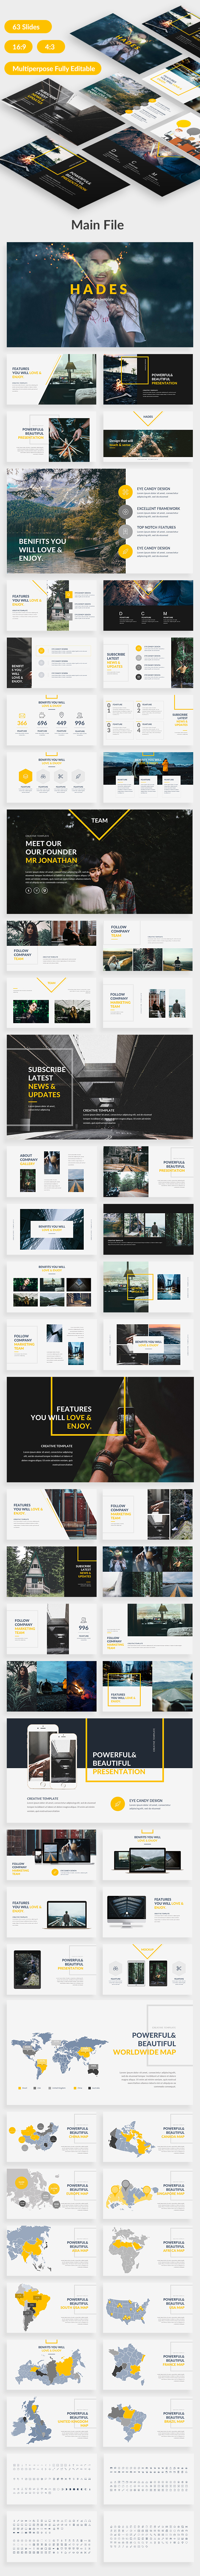 Hades Creative Google Slide Template - Google Slides Presentation Templates